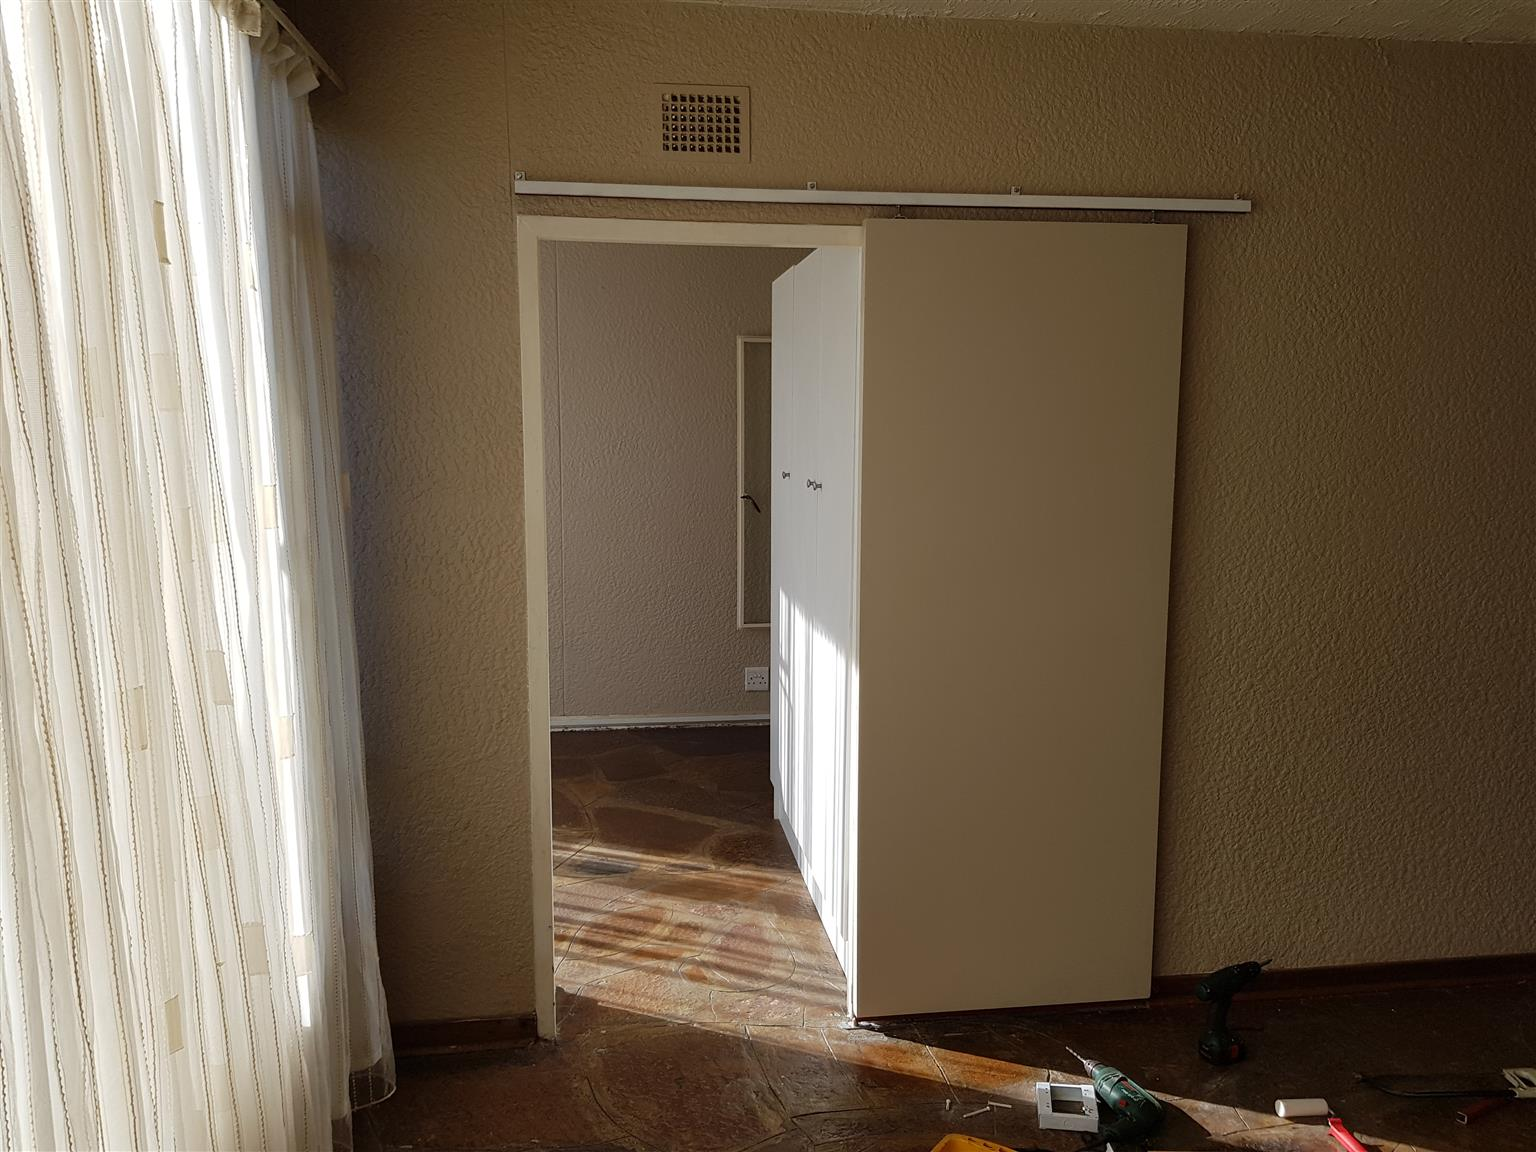 Flat to let in Roodepoort Hamberg